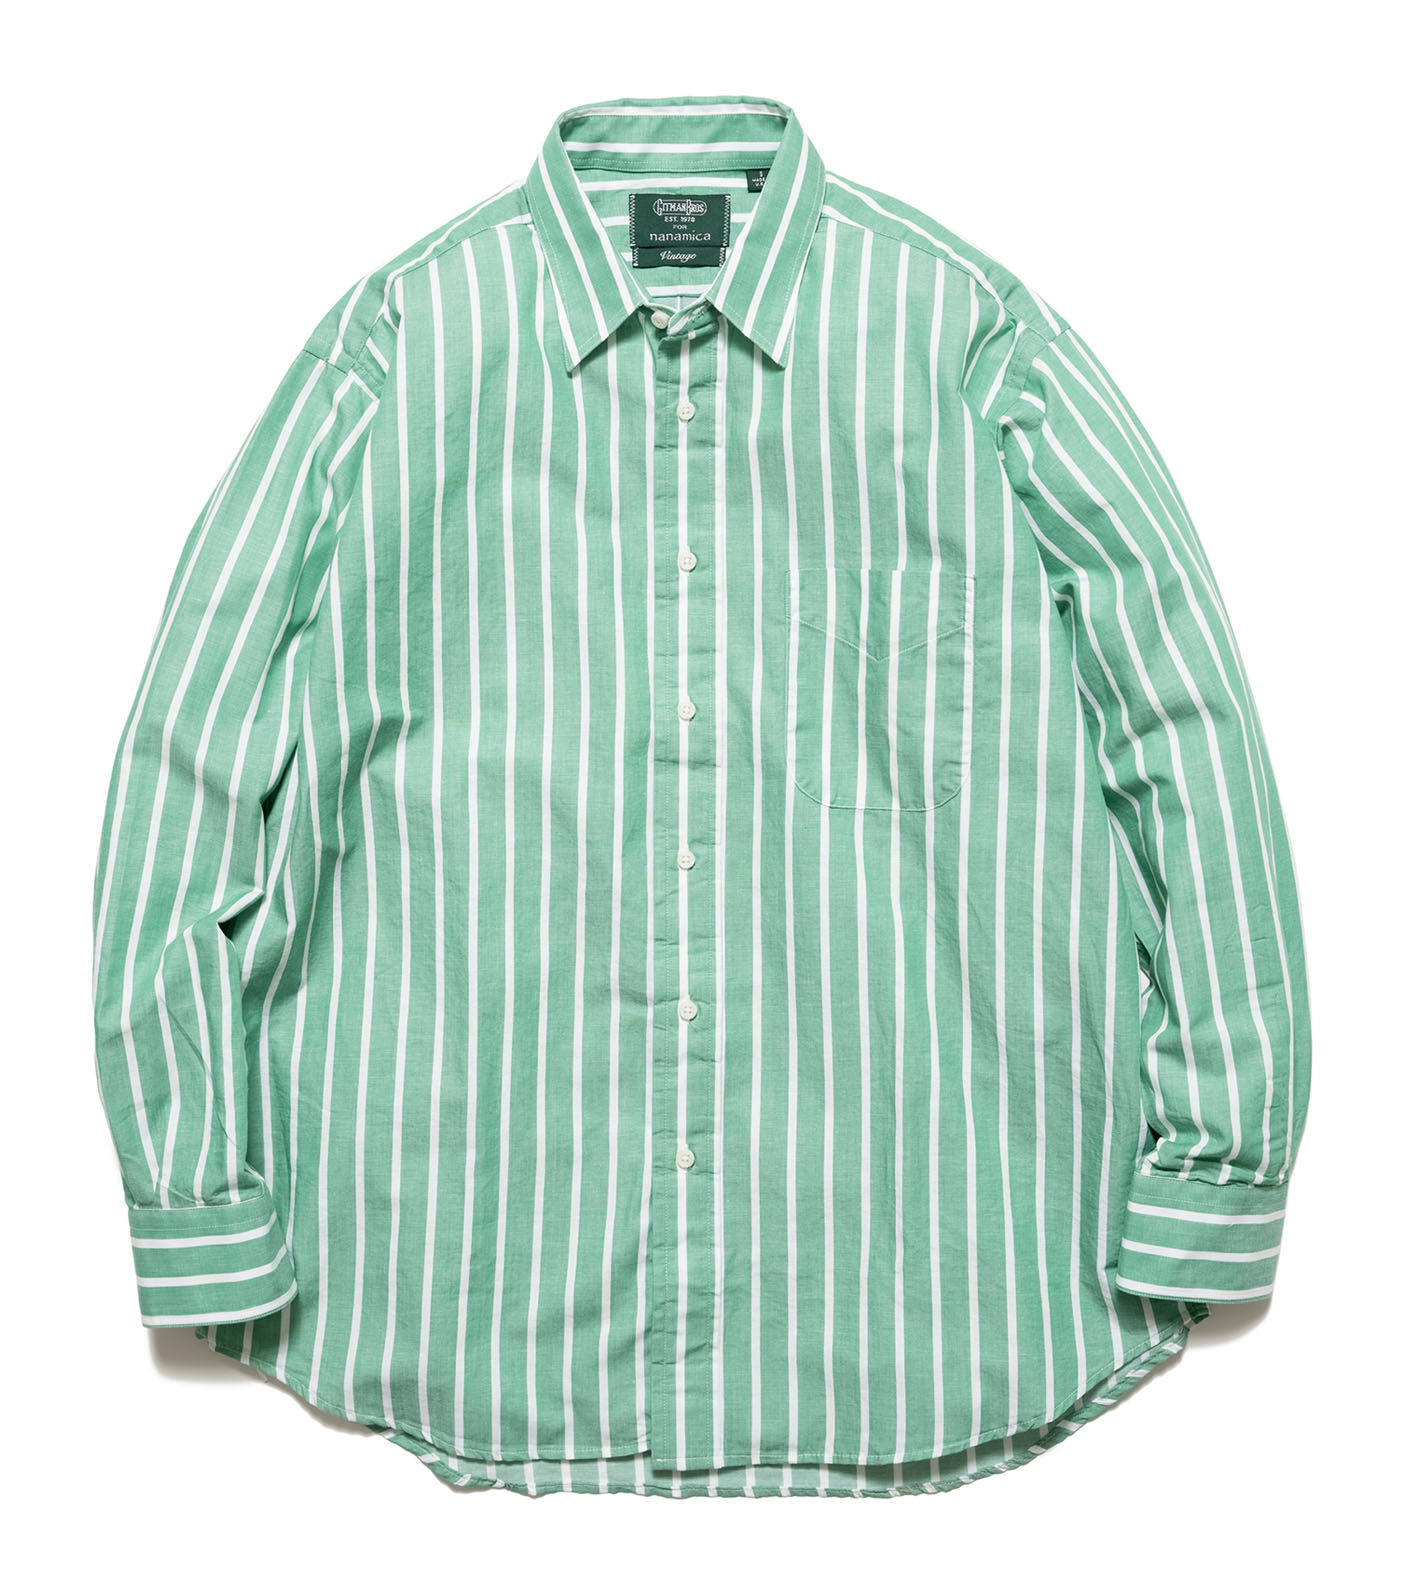 L/S Shirt Cotton/Linen  Awning Stripe